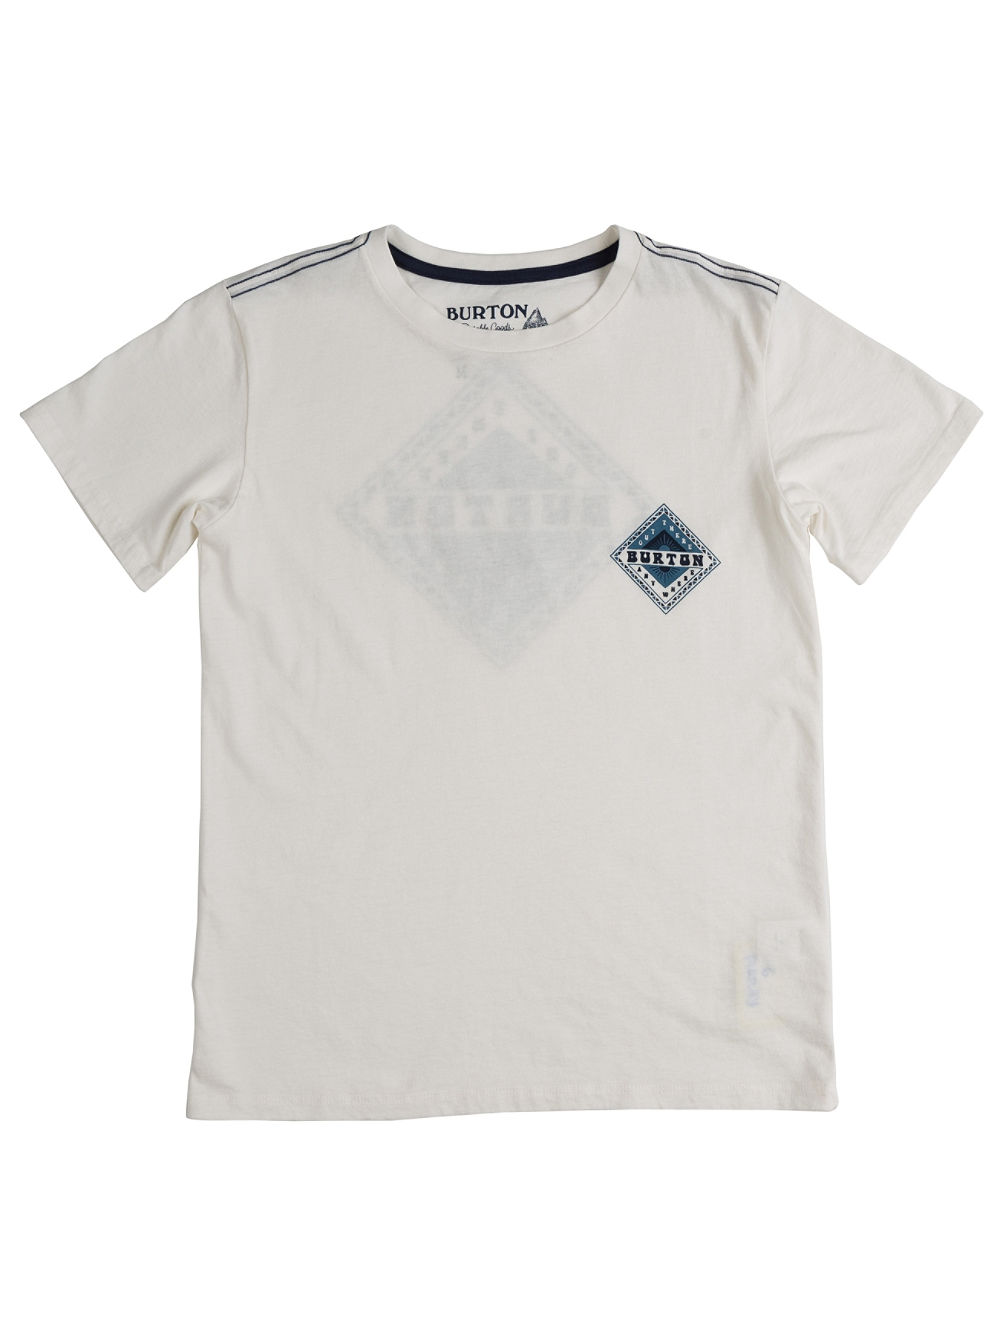 Anchor Point T-Shirt Boys